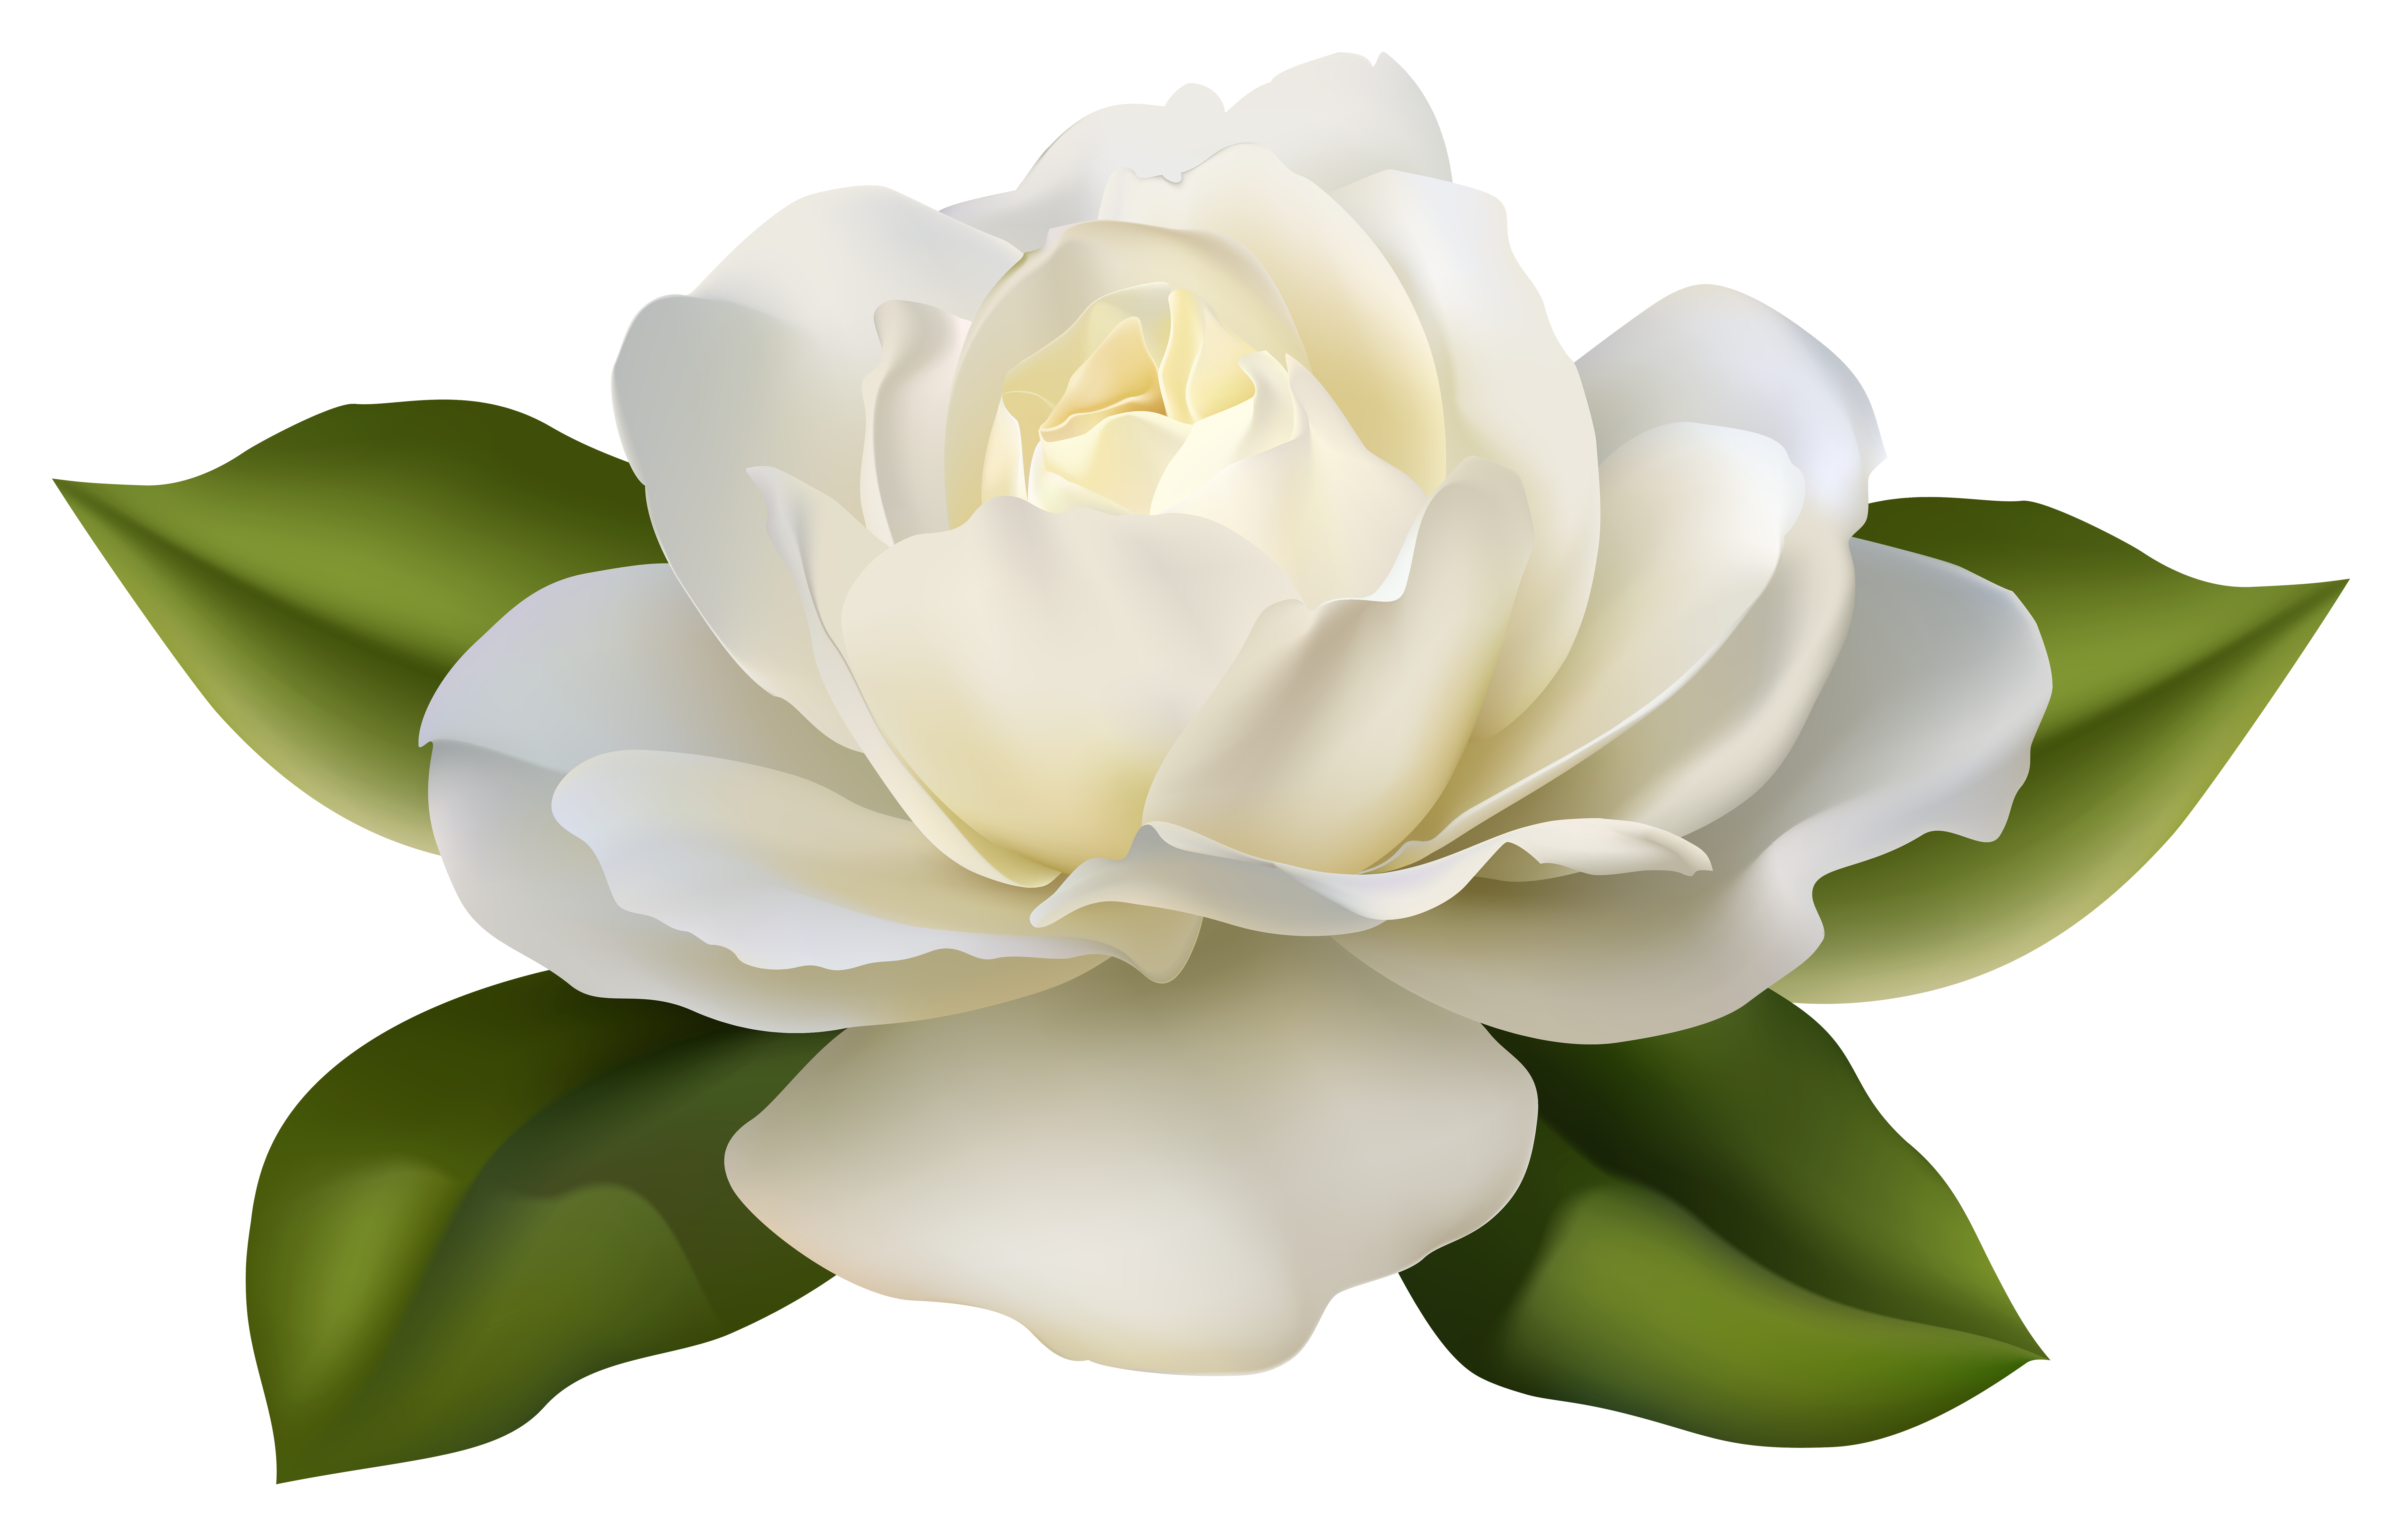 Beautiful clipart rose plant Leaves Image White  with